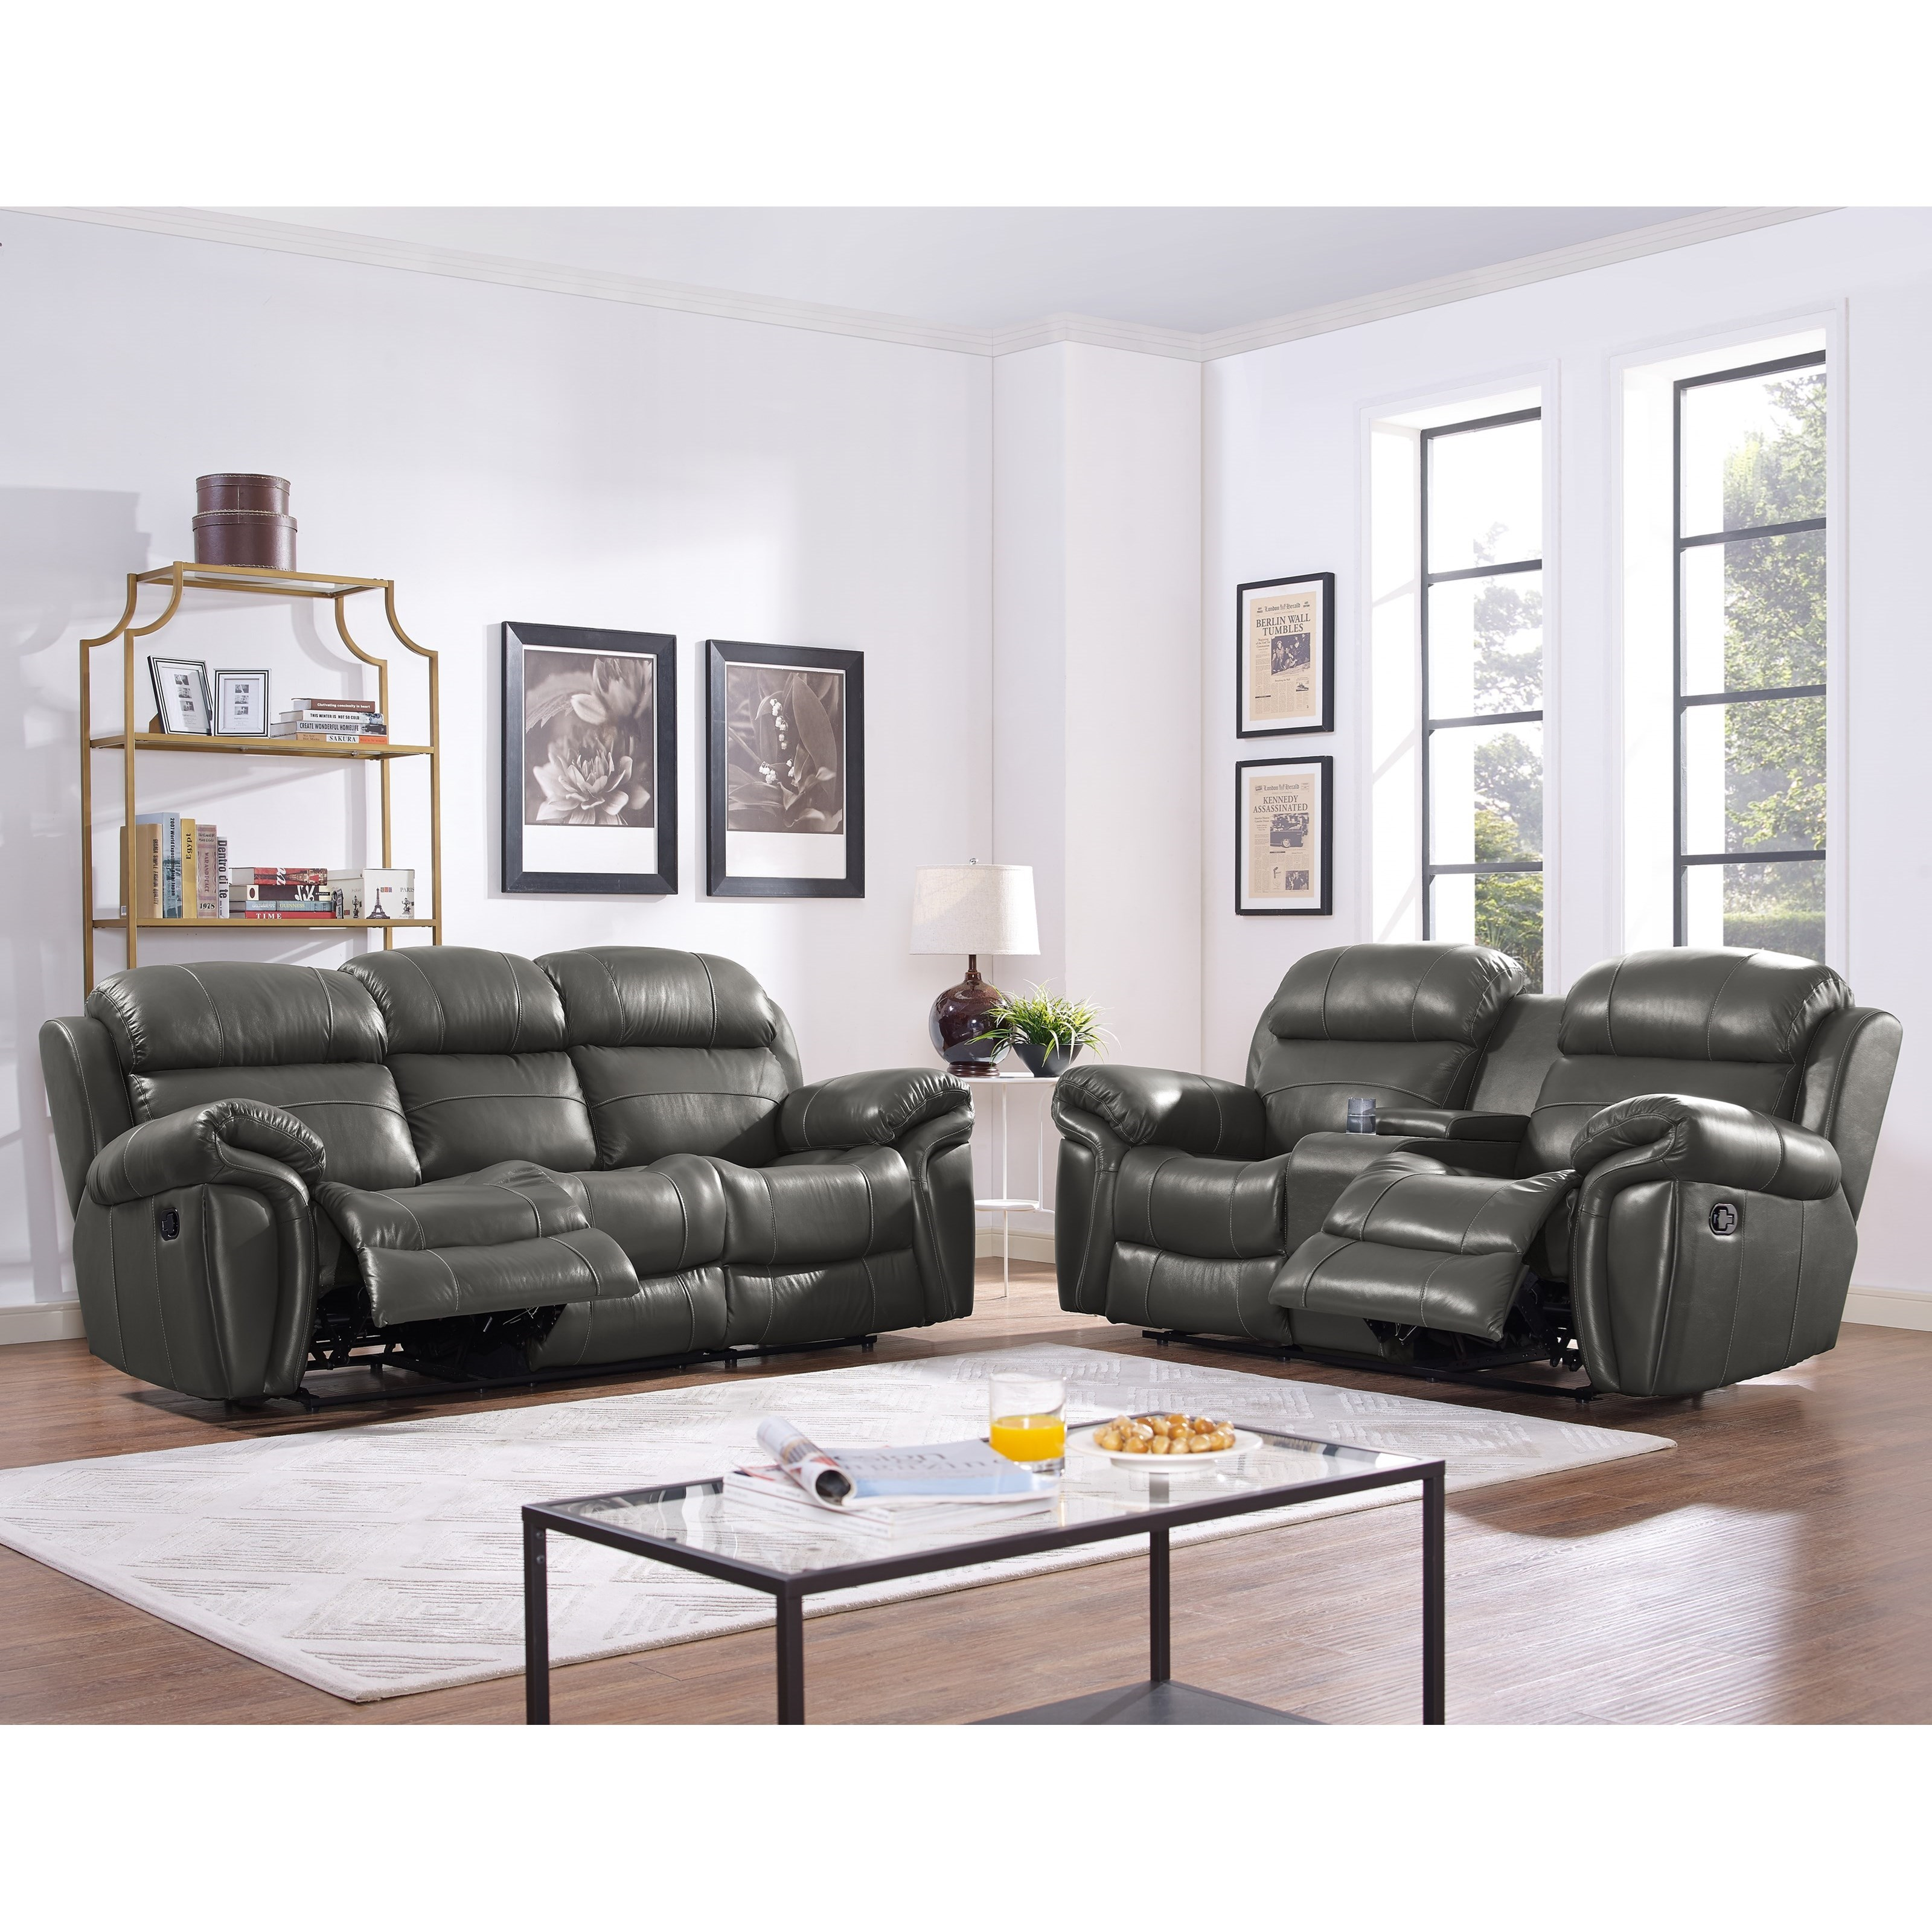 New Classic Paloma Reclining Living Room Group Adcock